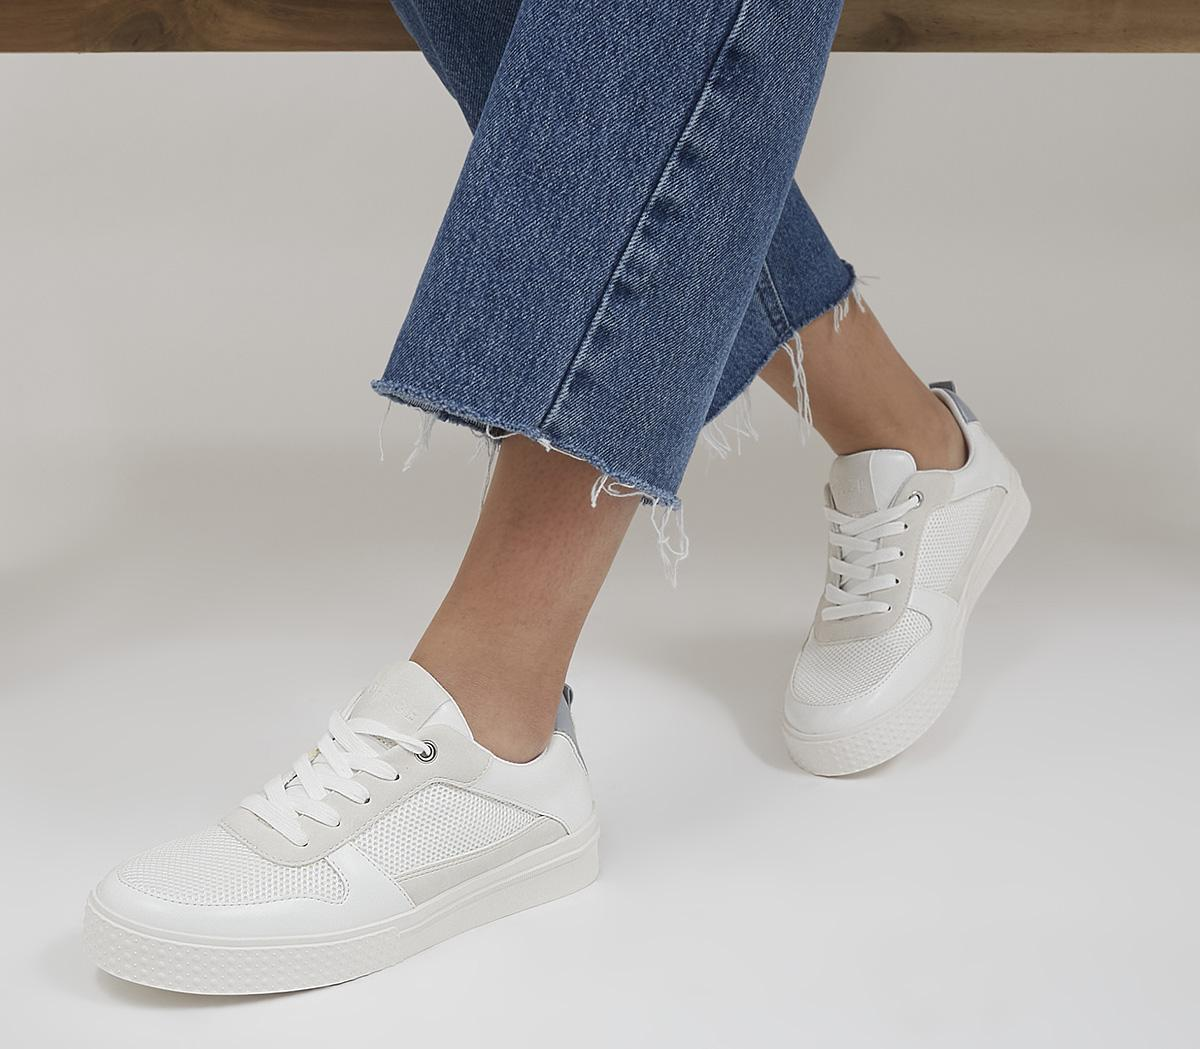 Forwards Textured Sole Lace Up Trainers